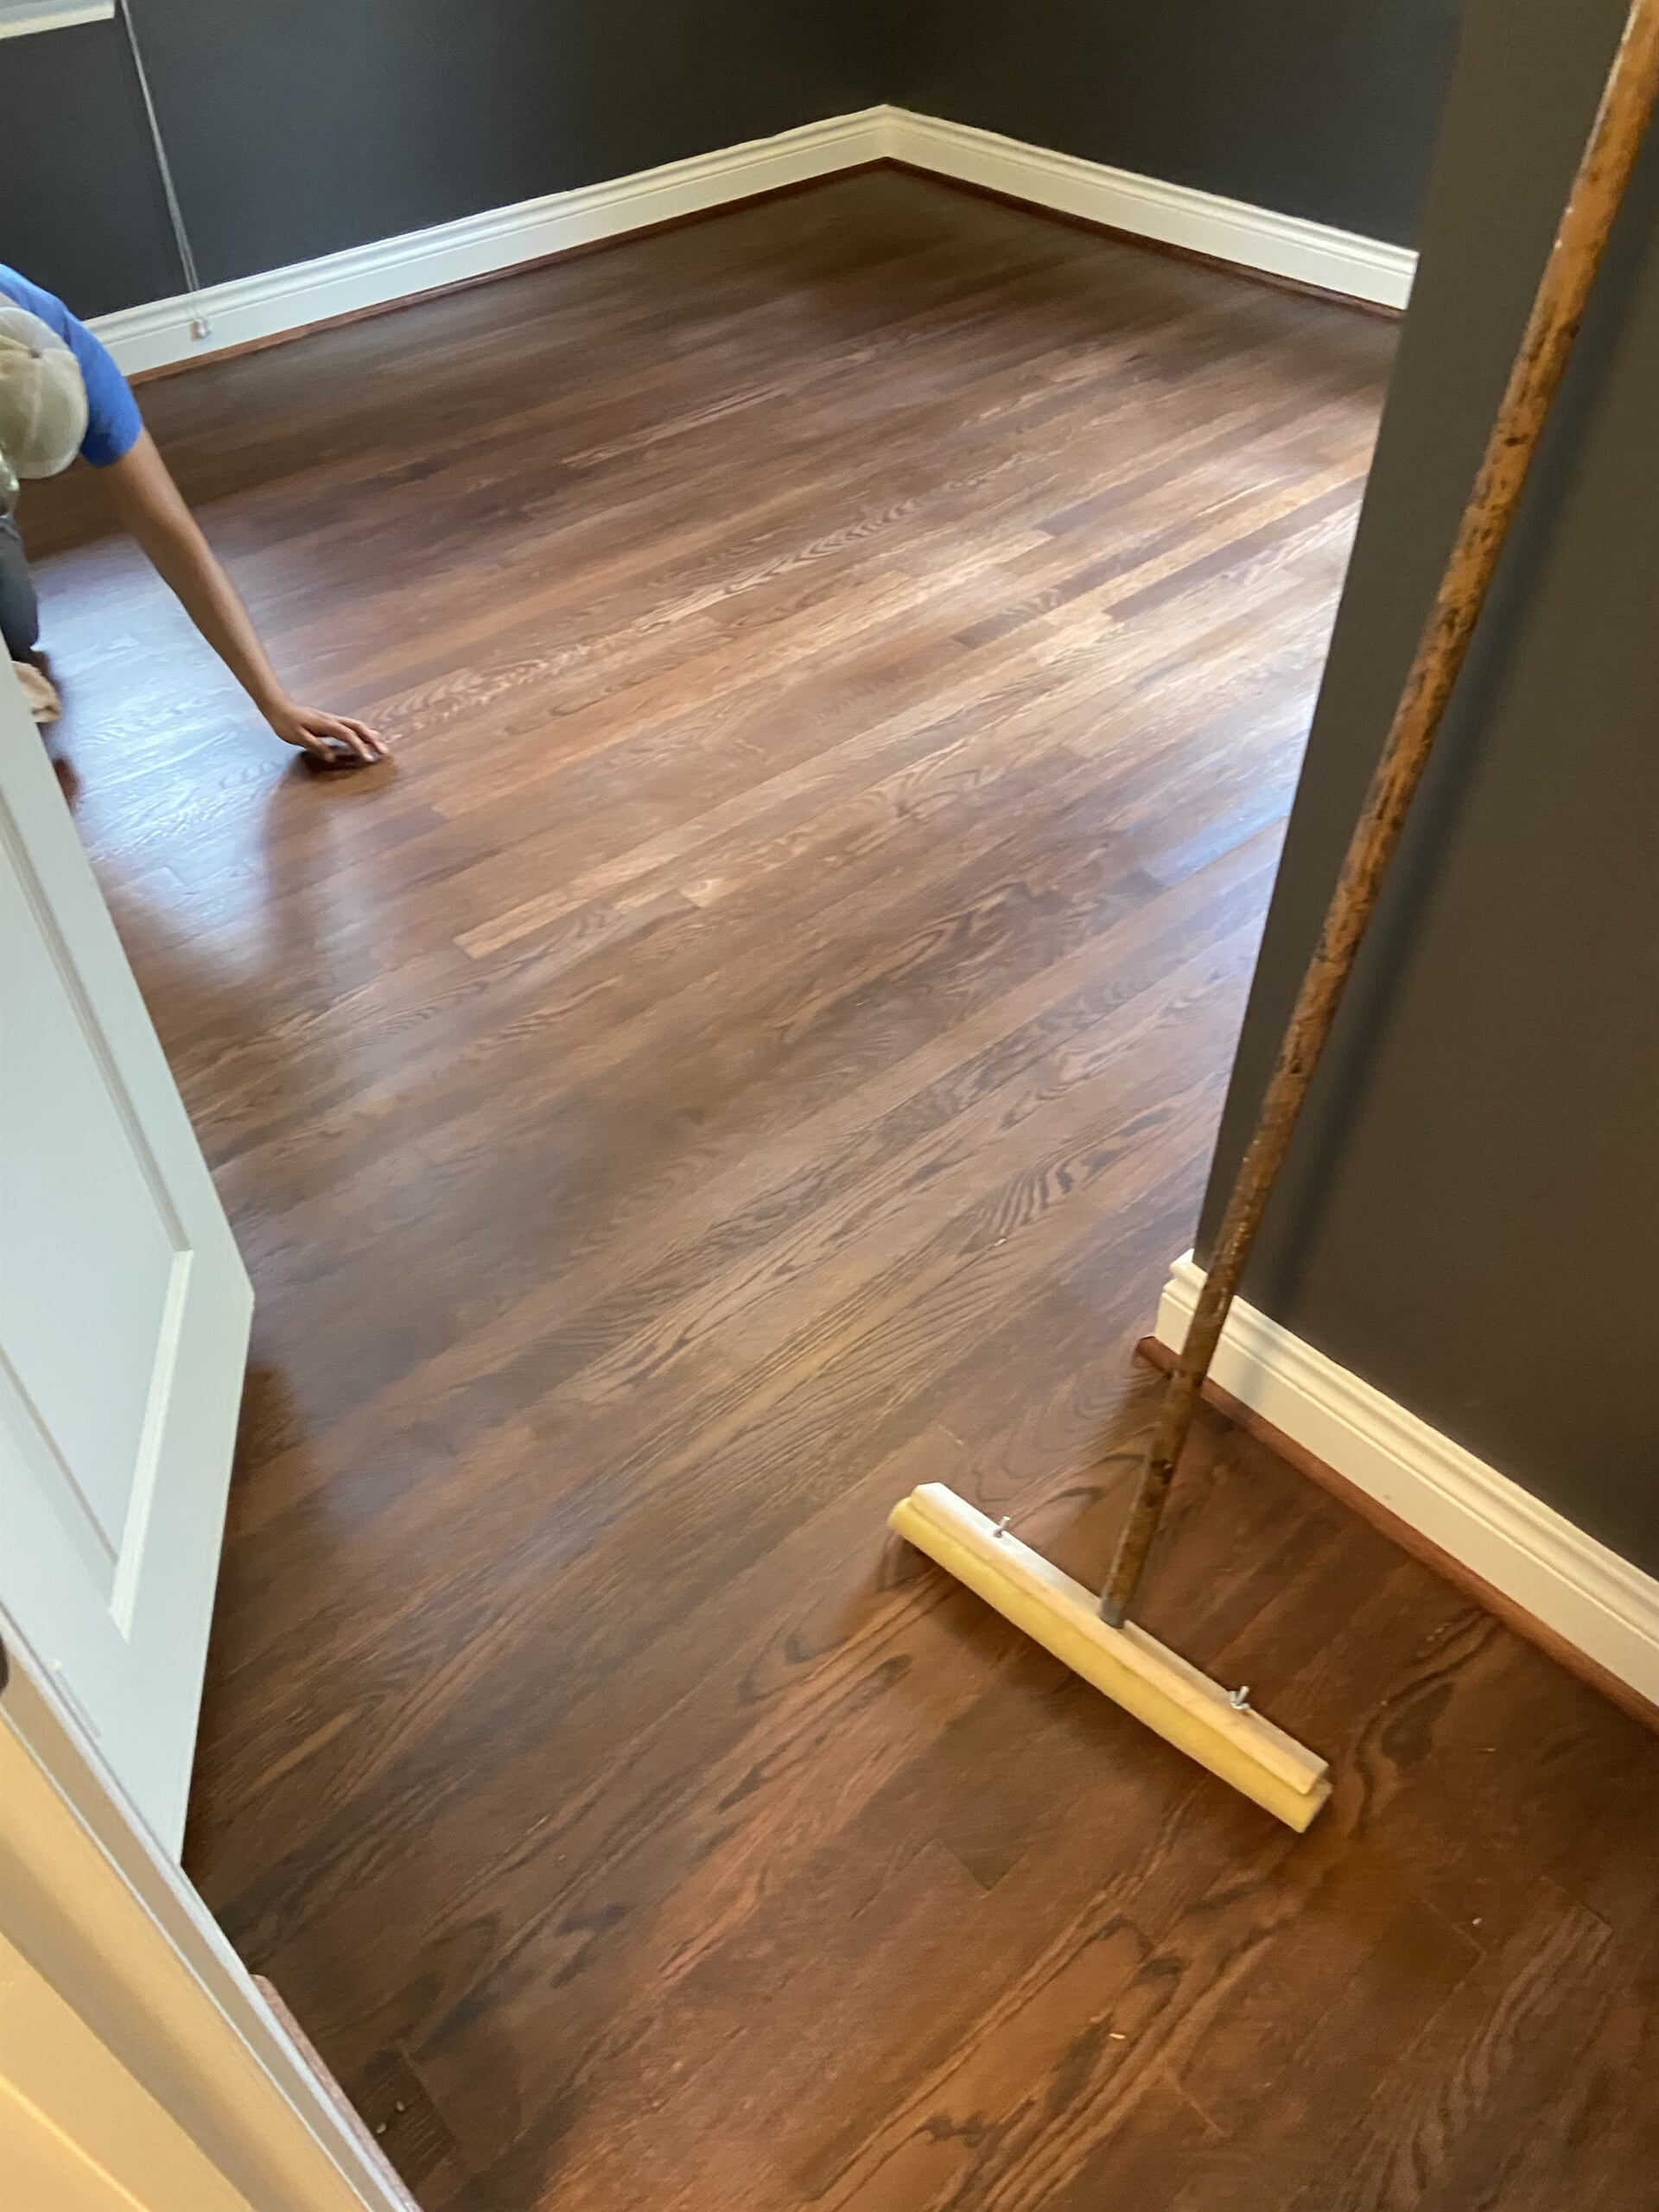 Hardwood refinishing from Houston Floor Installation Services in Conroe, TX